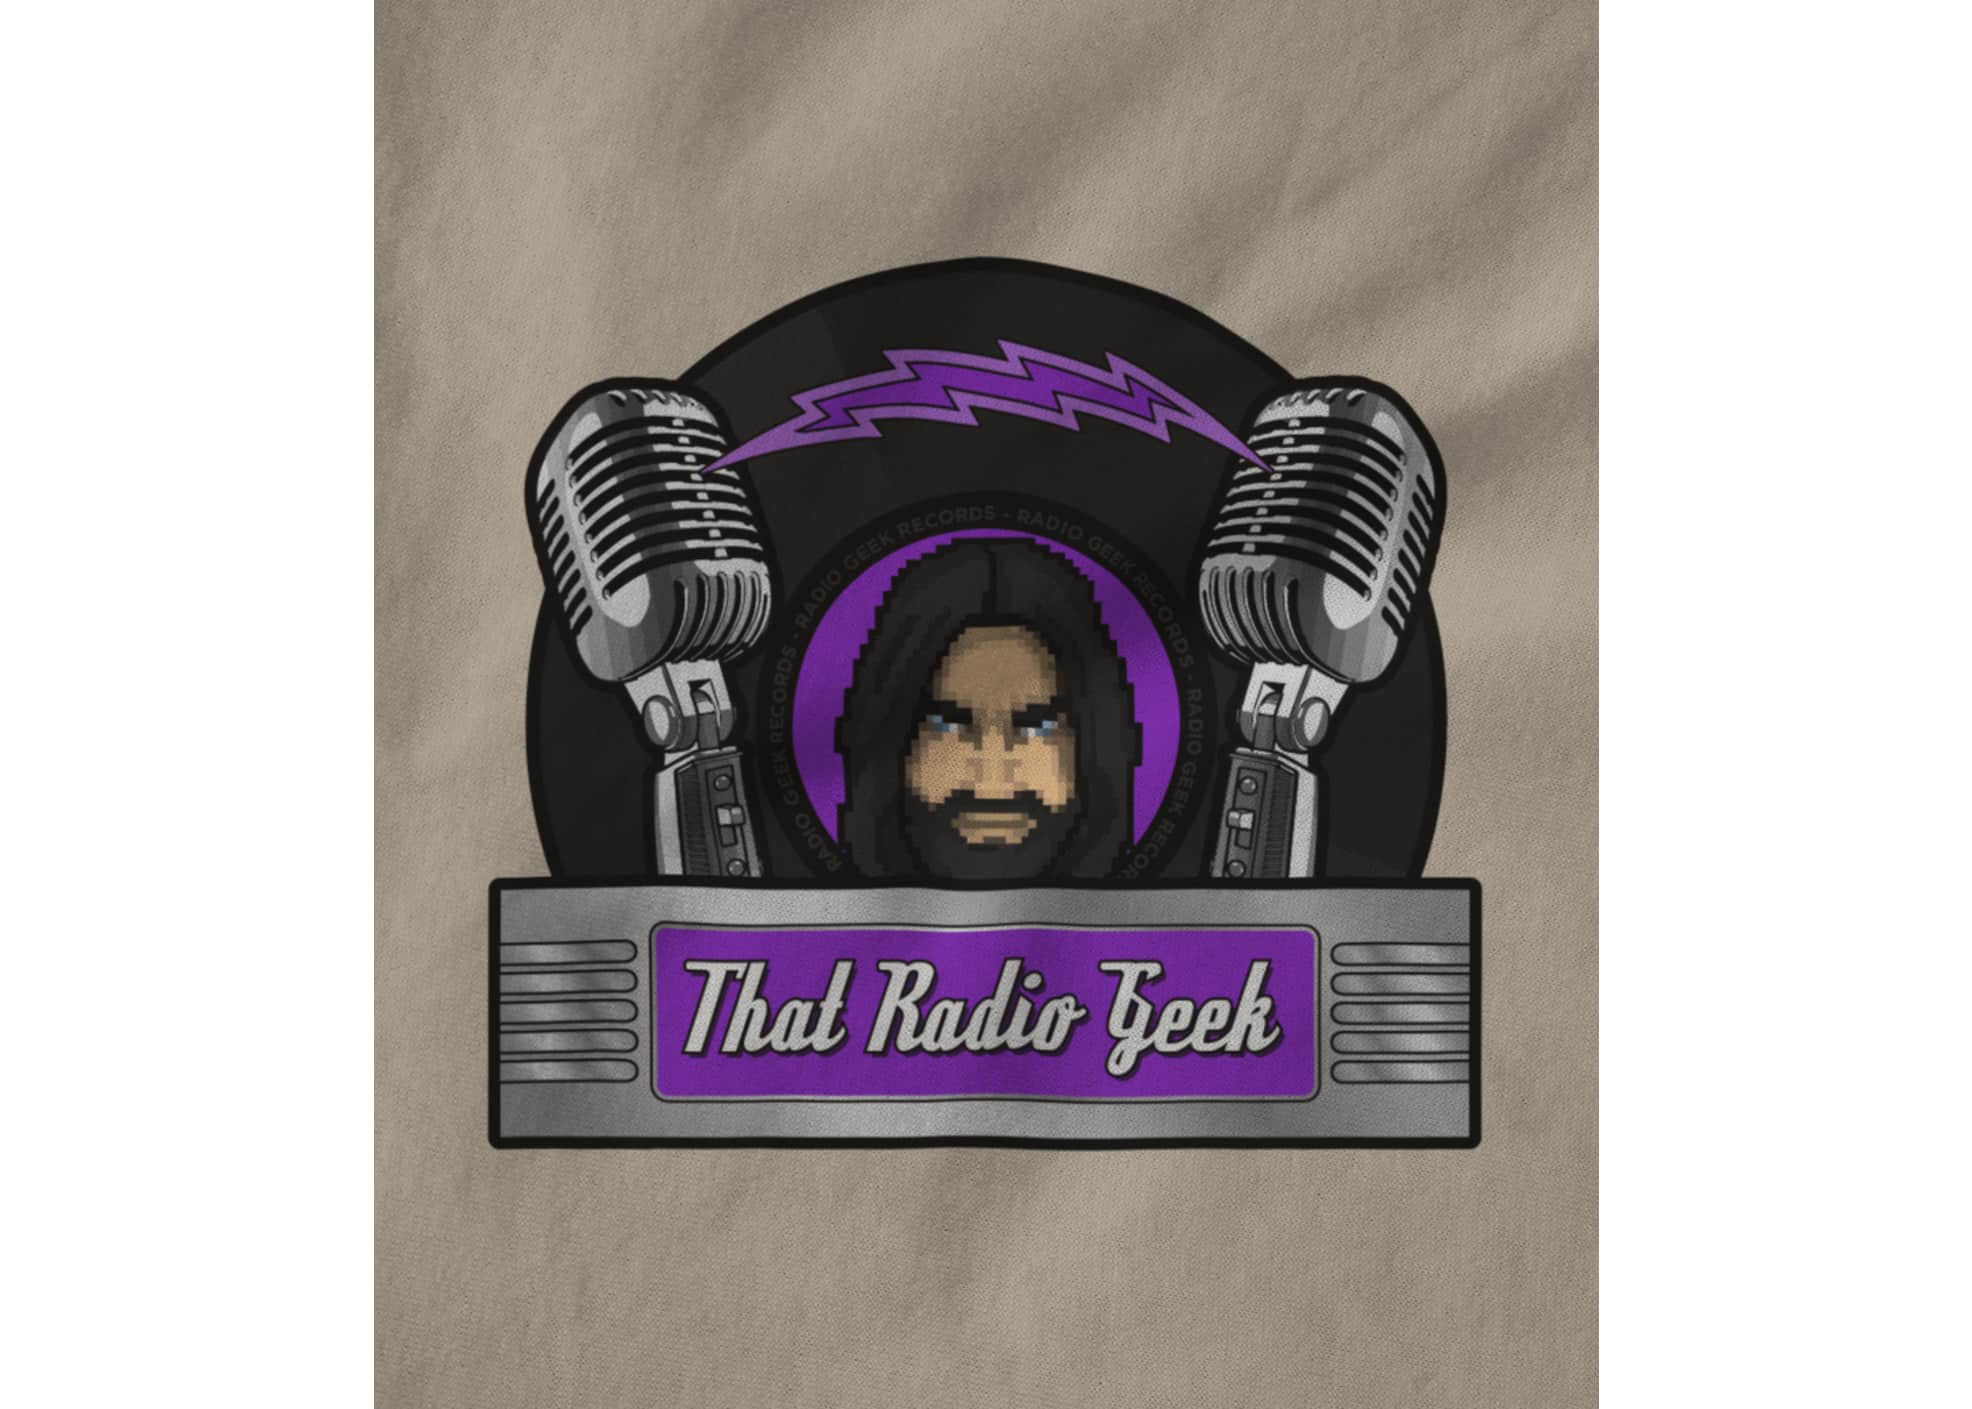 Thatradiogeek logo on creme 1615477906